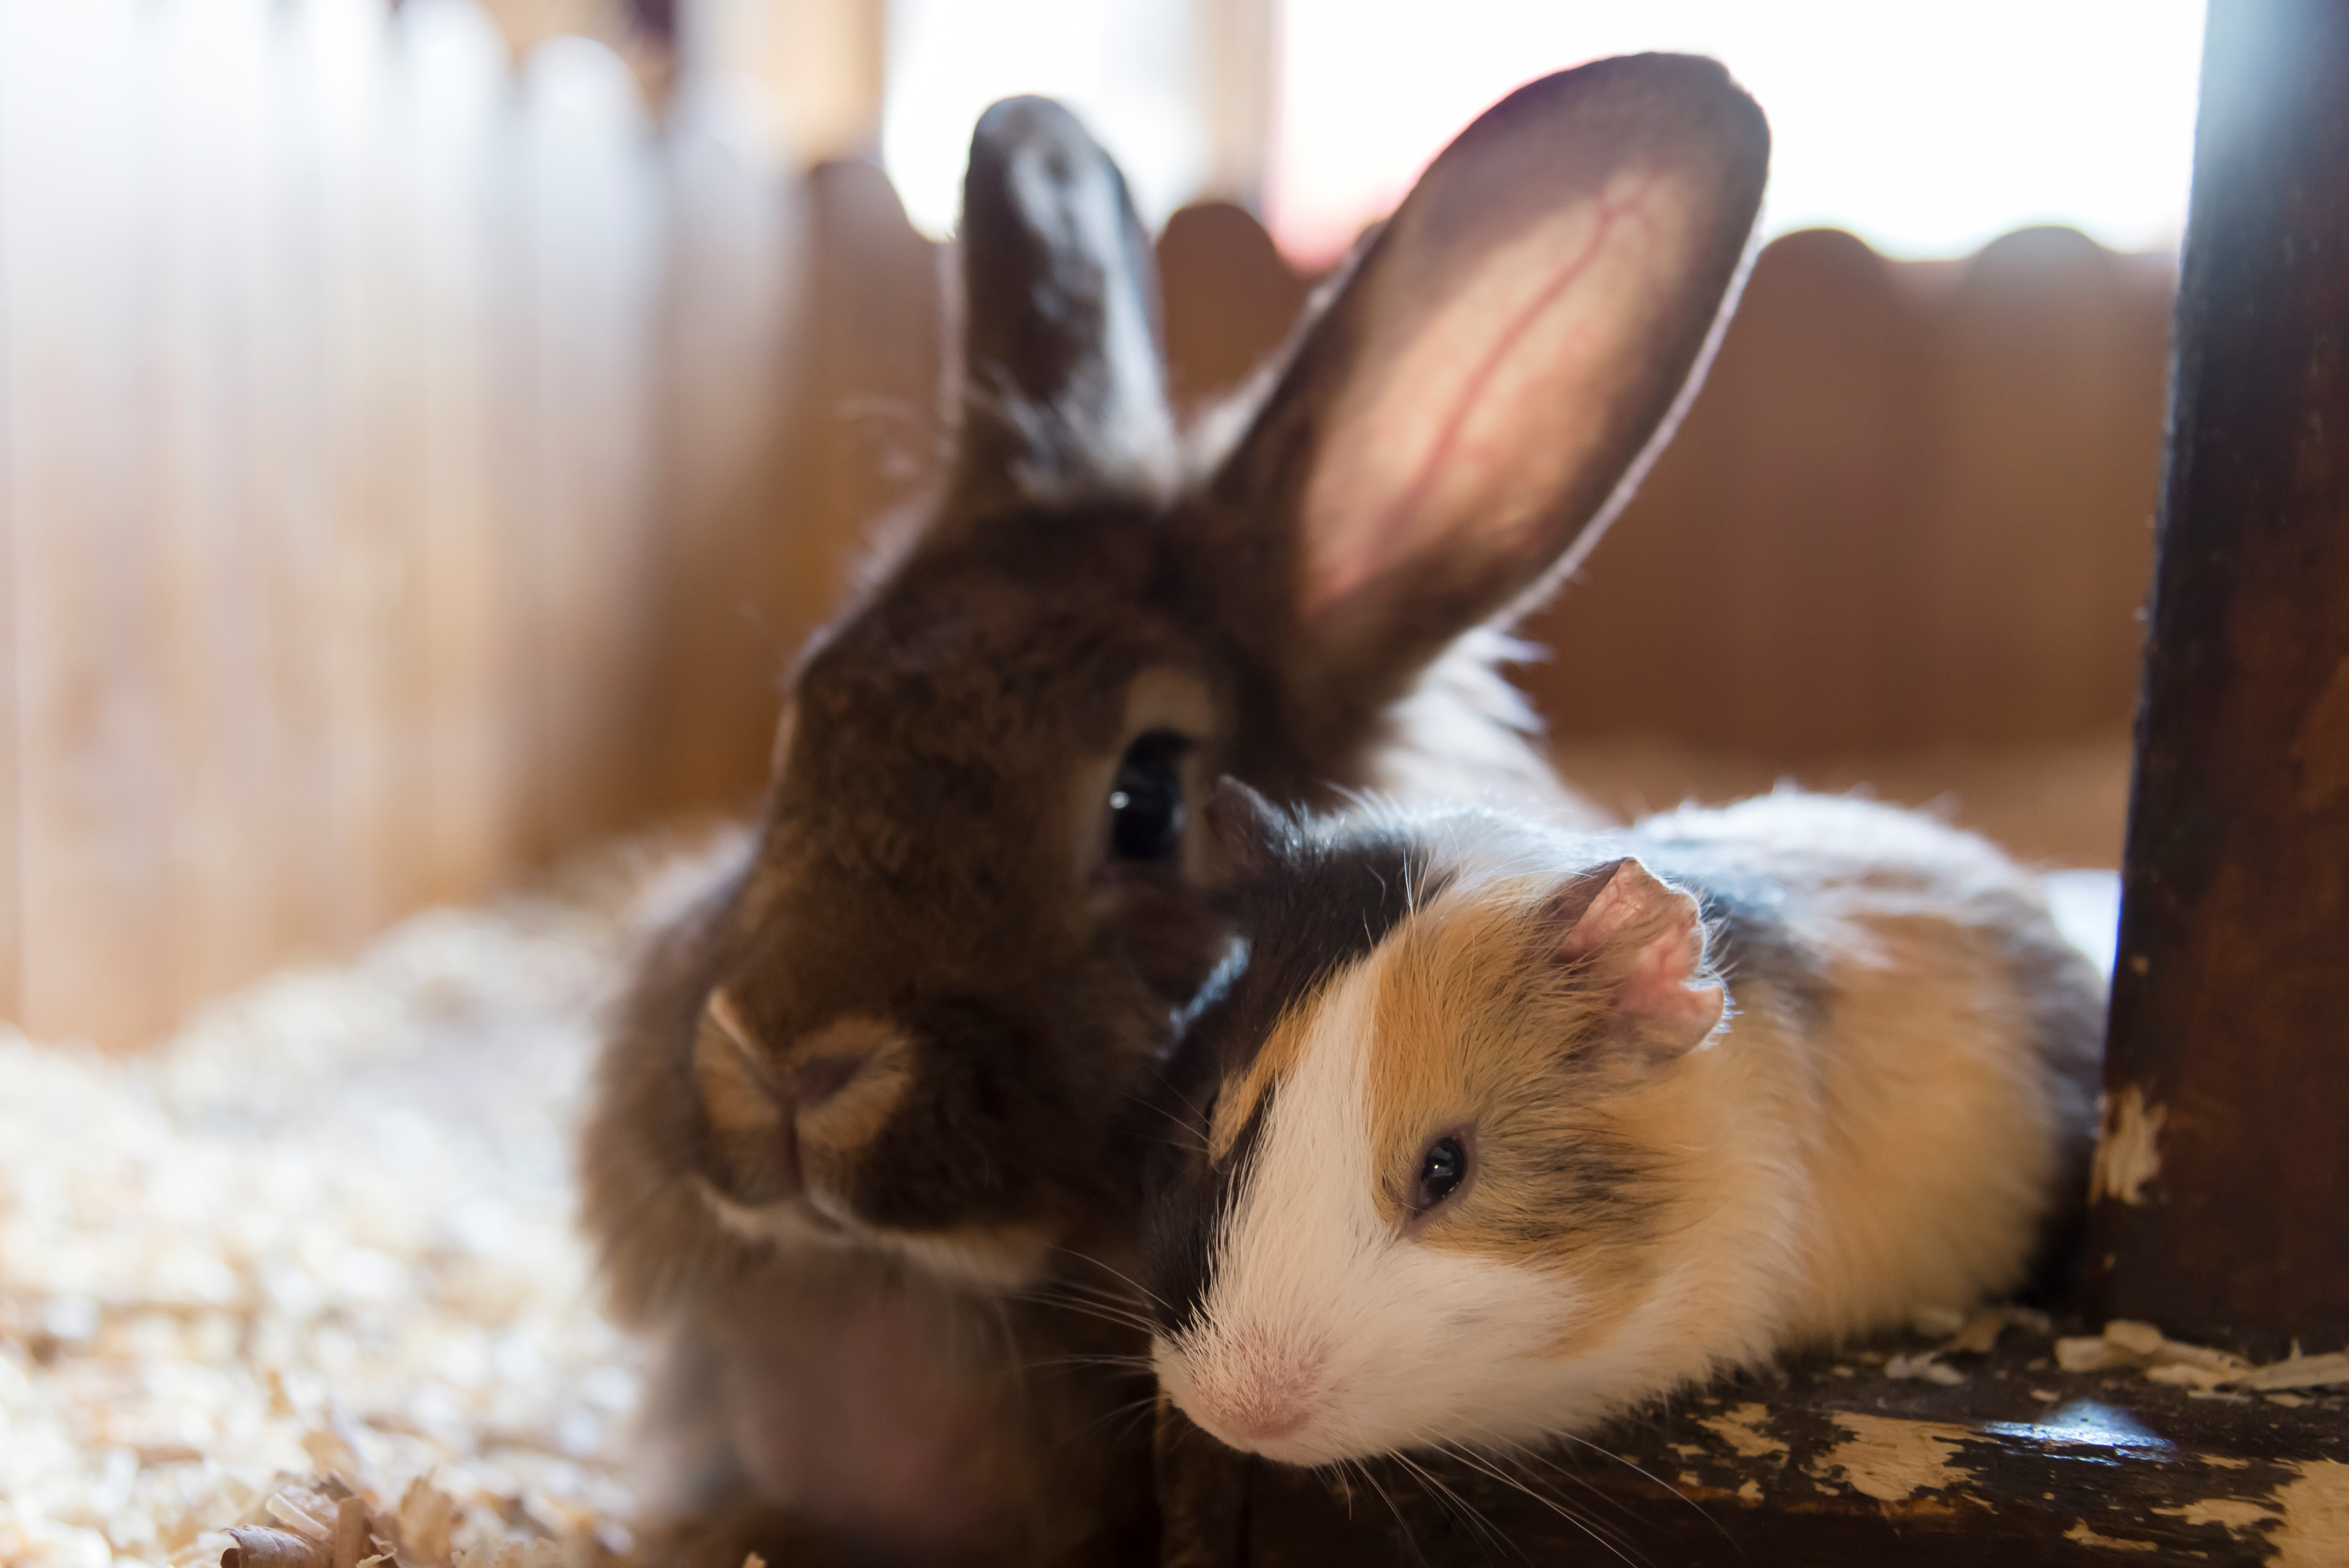 Sharon asks if her rabbit is lonely now that her guinea pig has died